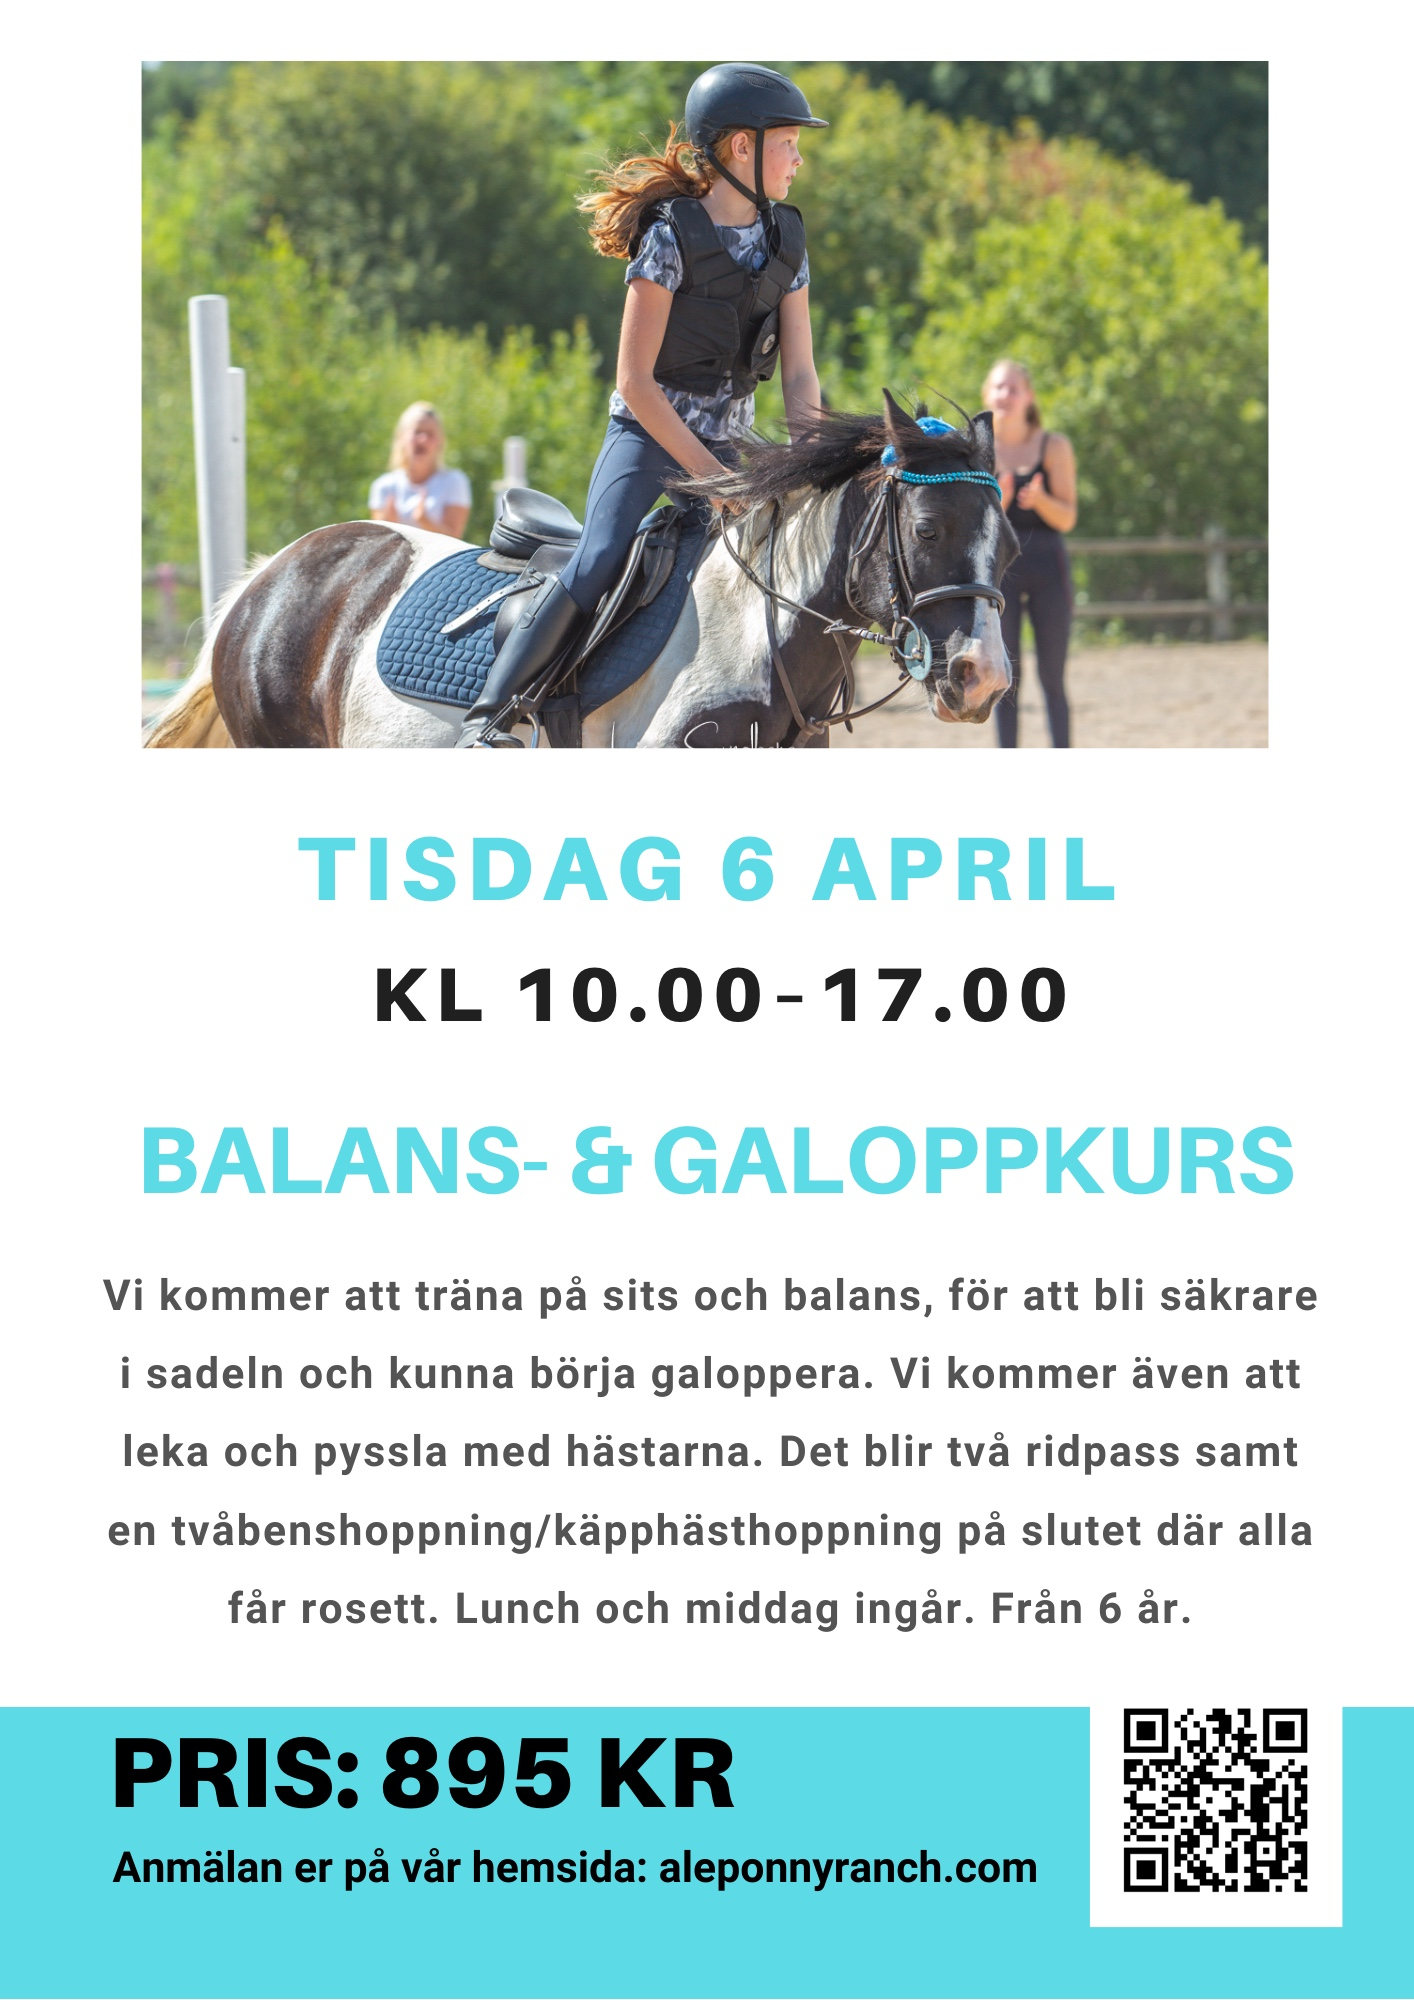 Tisdag 6 april, 2021 (påsklovet) kl 10.00-17.00